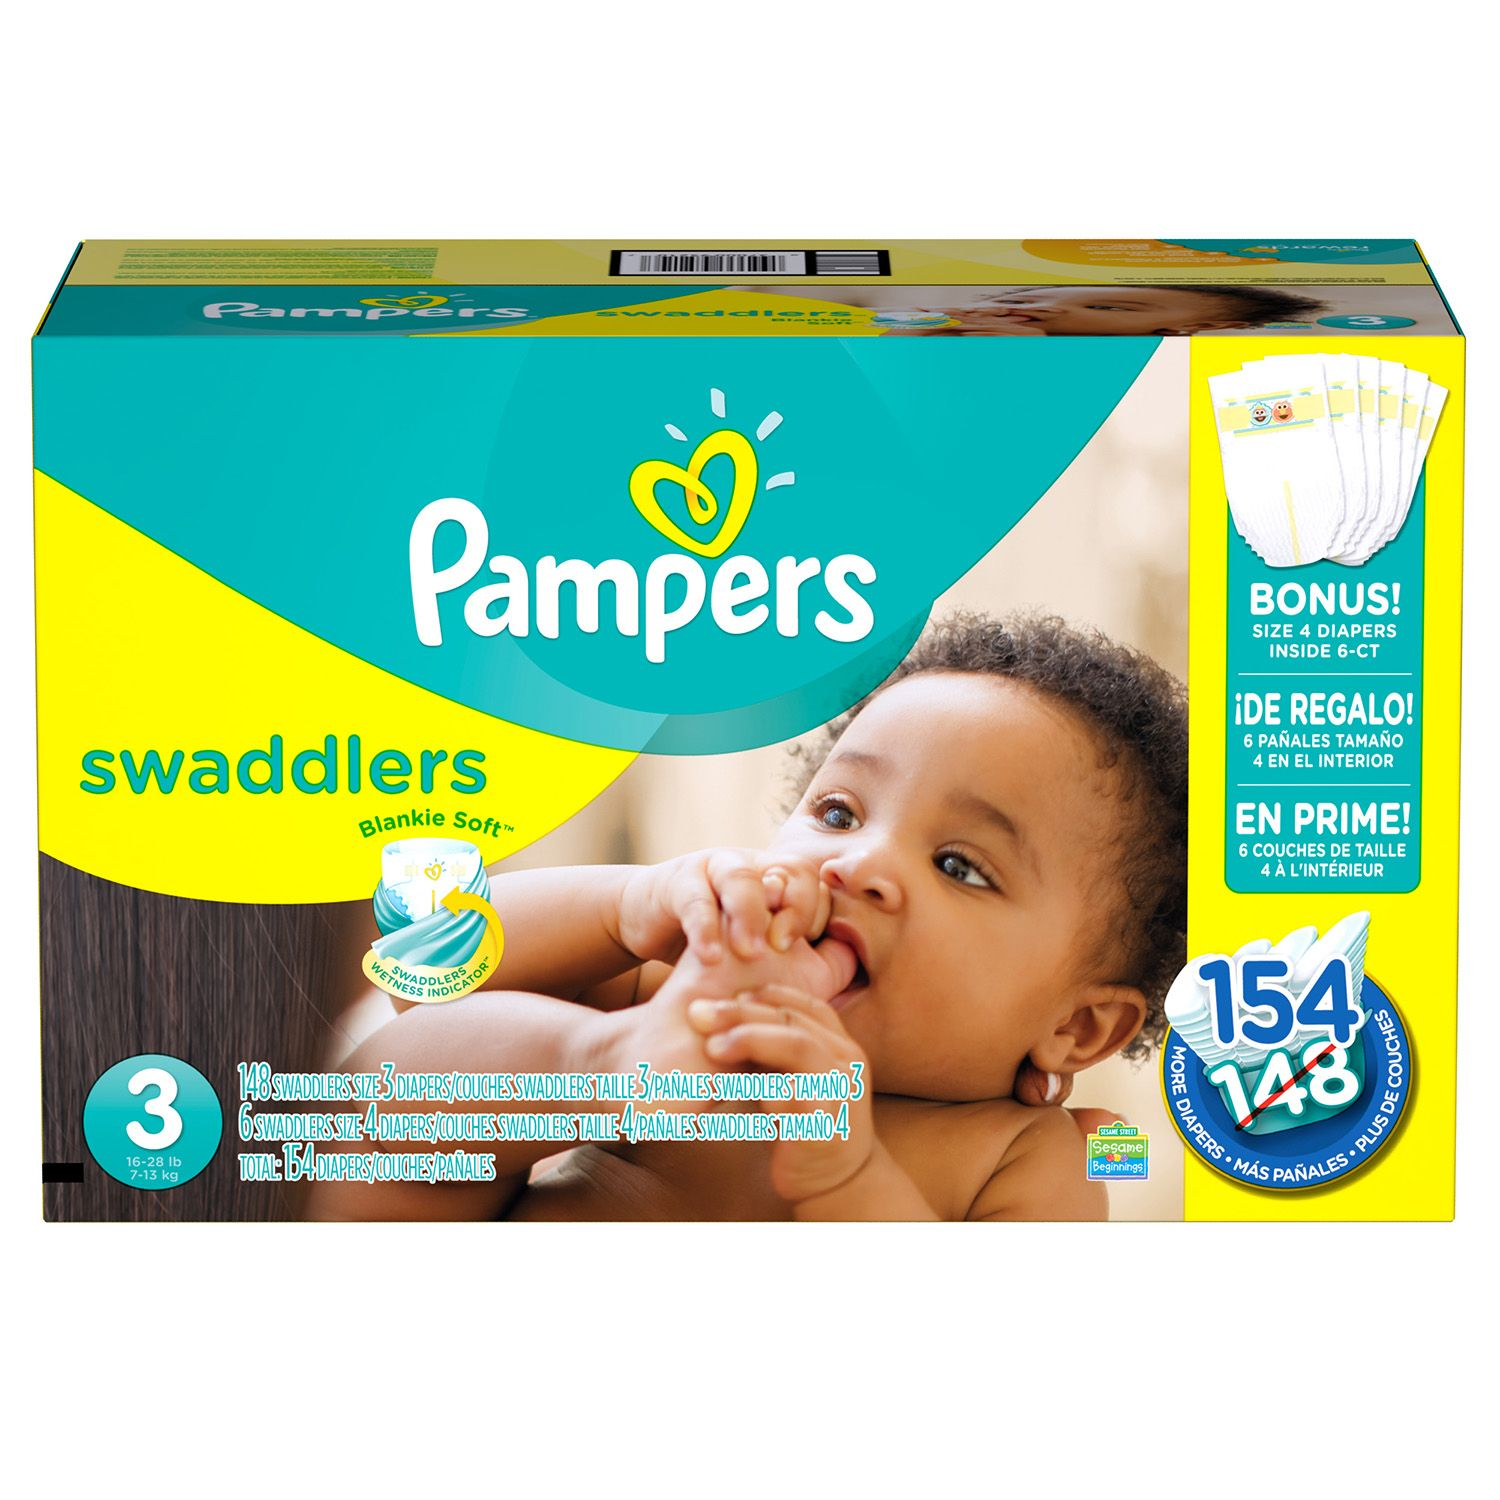 Pampers Swaddlers Diapers (Size 3, 154 ct.) by Pampers